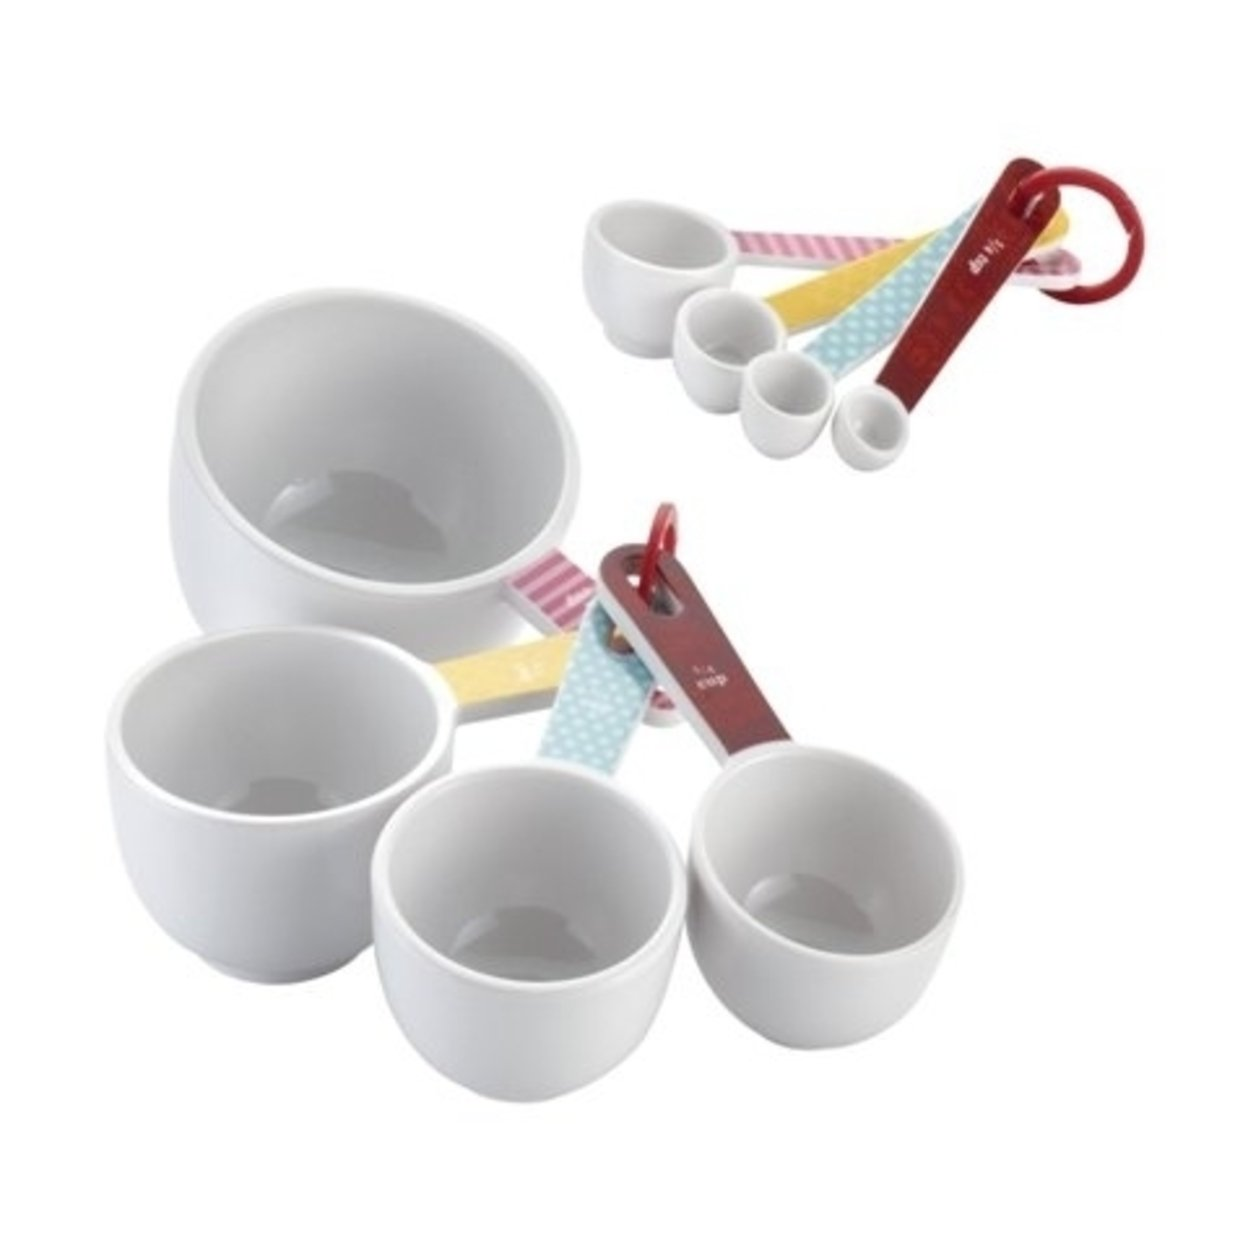 Cake Boss 55467 Countertop Accessories 8-Piece Melamine Measuring Cups And Spoons Set, Basic Pattern 596e27332a00e4592020305c